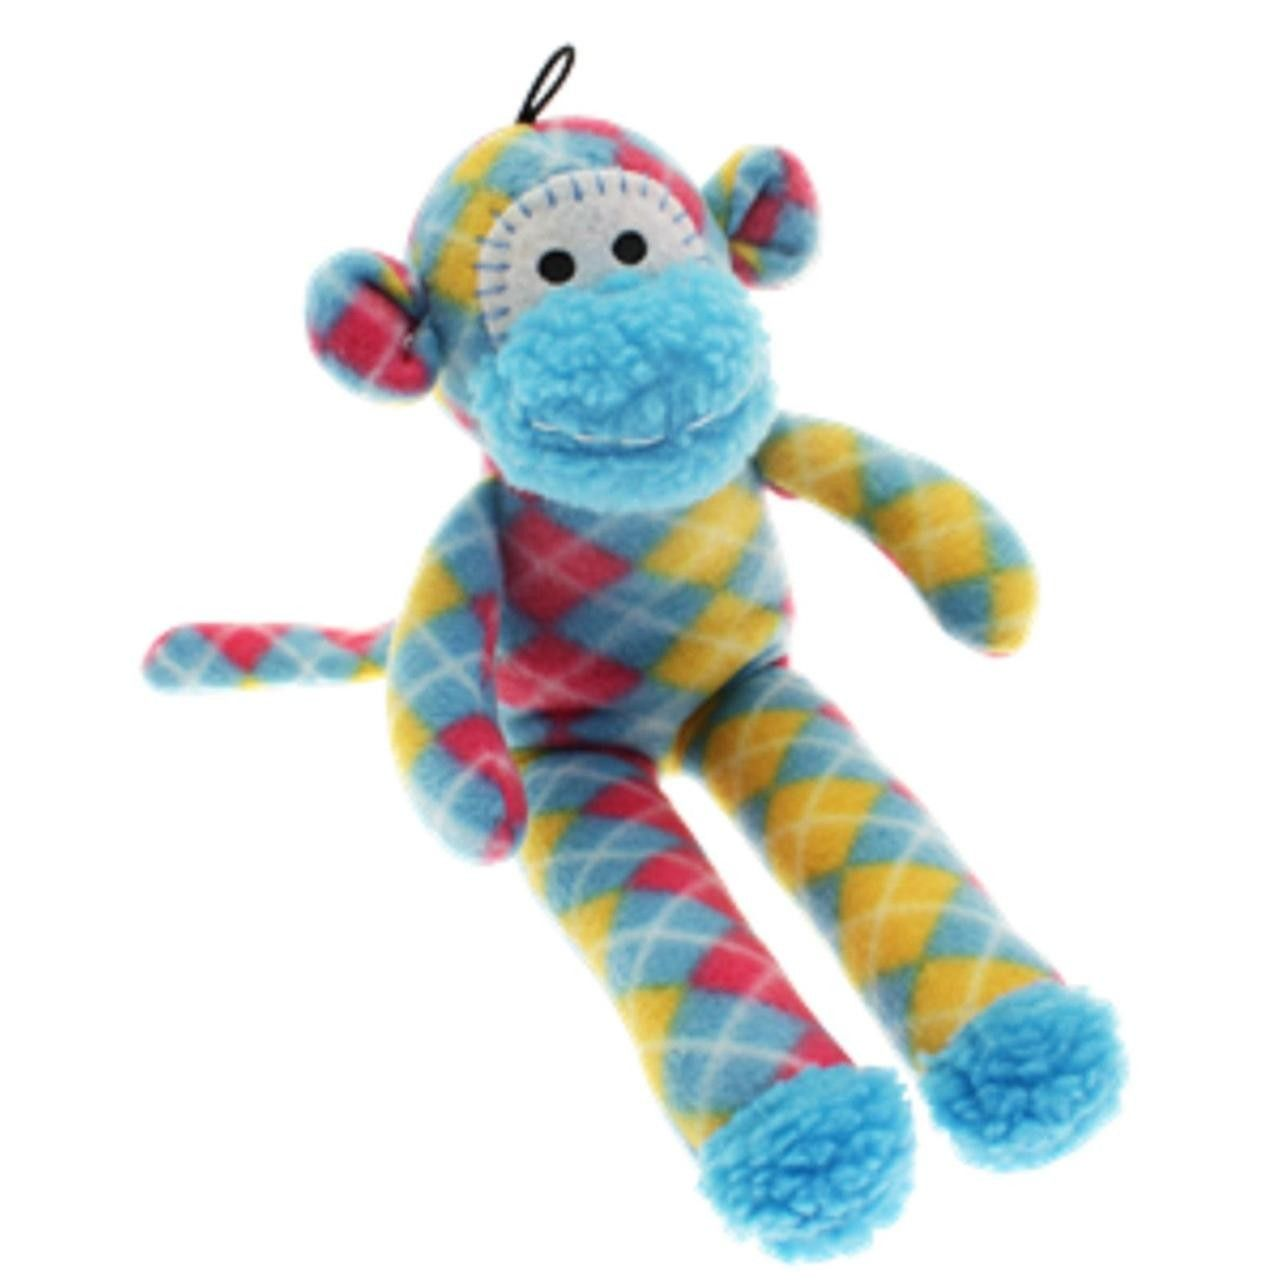 Checked Happy Pet Sock Monkey Plush Dog Toy The Bright And Cute